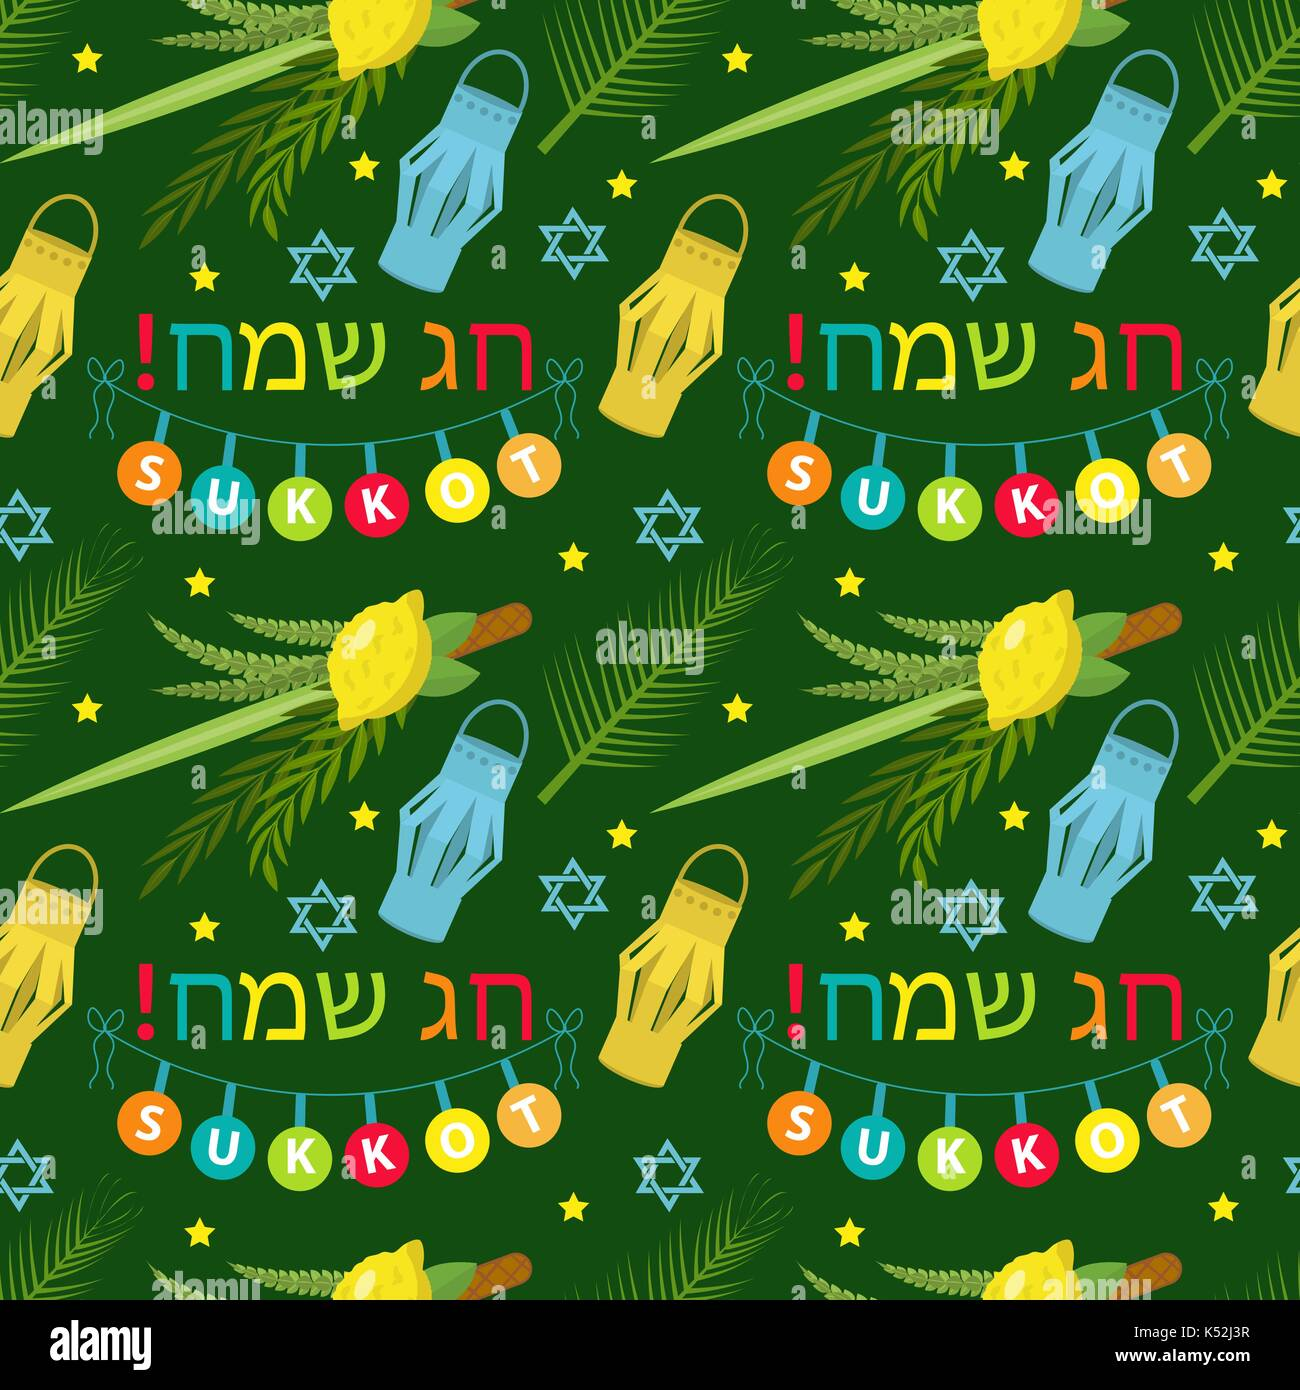 Happy Sukkot seamless pattern. Jewish holiday huts endless background. Repeating texture with etrog, lulav, Arava, Stock Vector